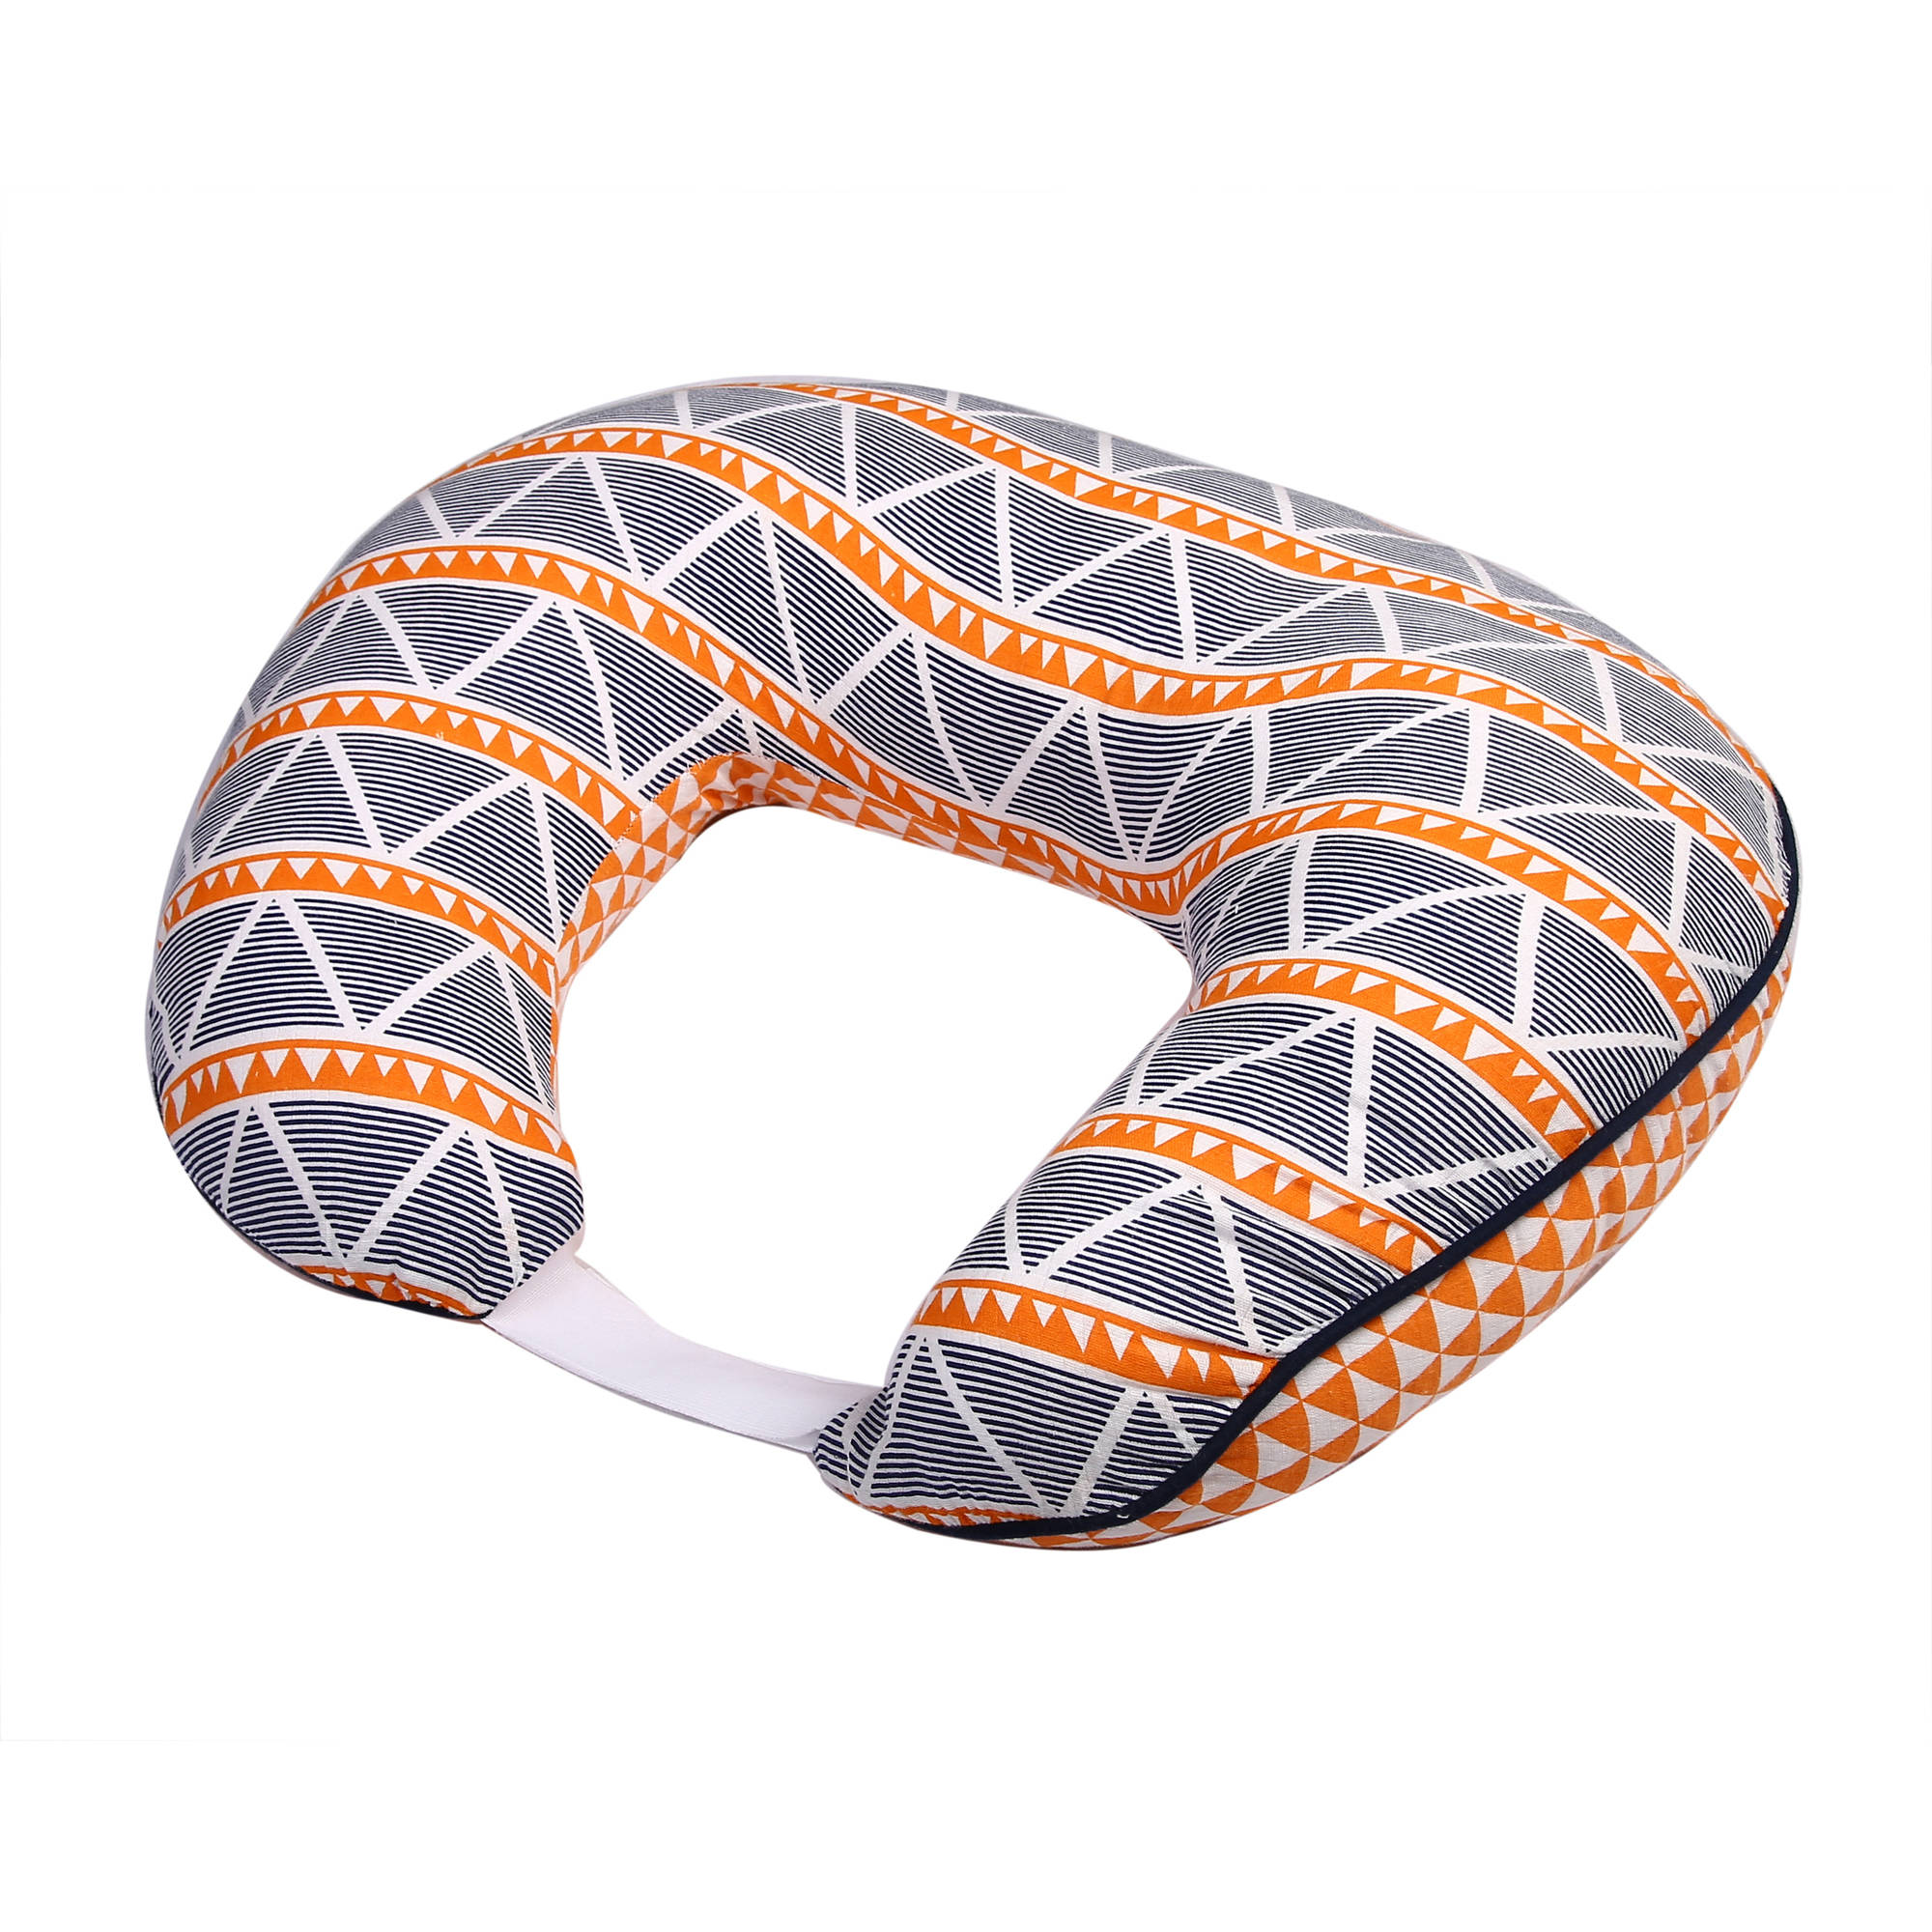 Bacati - Liam Aztec Orange/Navy Large Triangles Muslin Nursing Pillow Cover fits perfectly only Bacati - Hugster Nursing Pillow